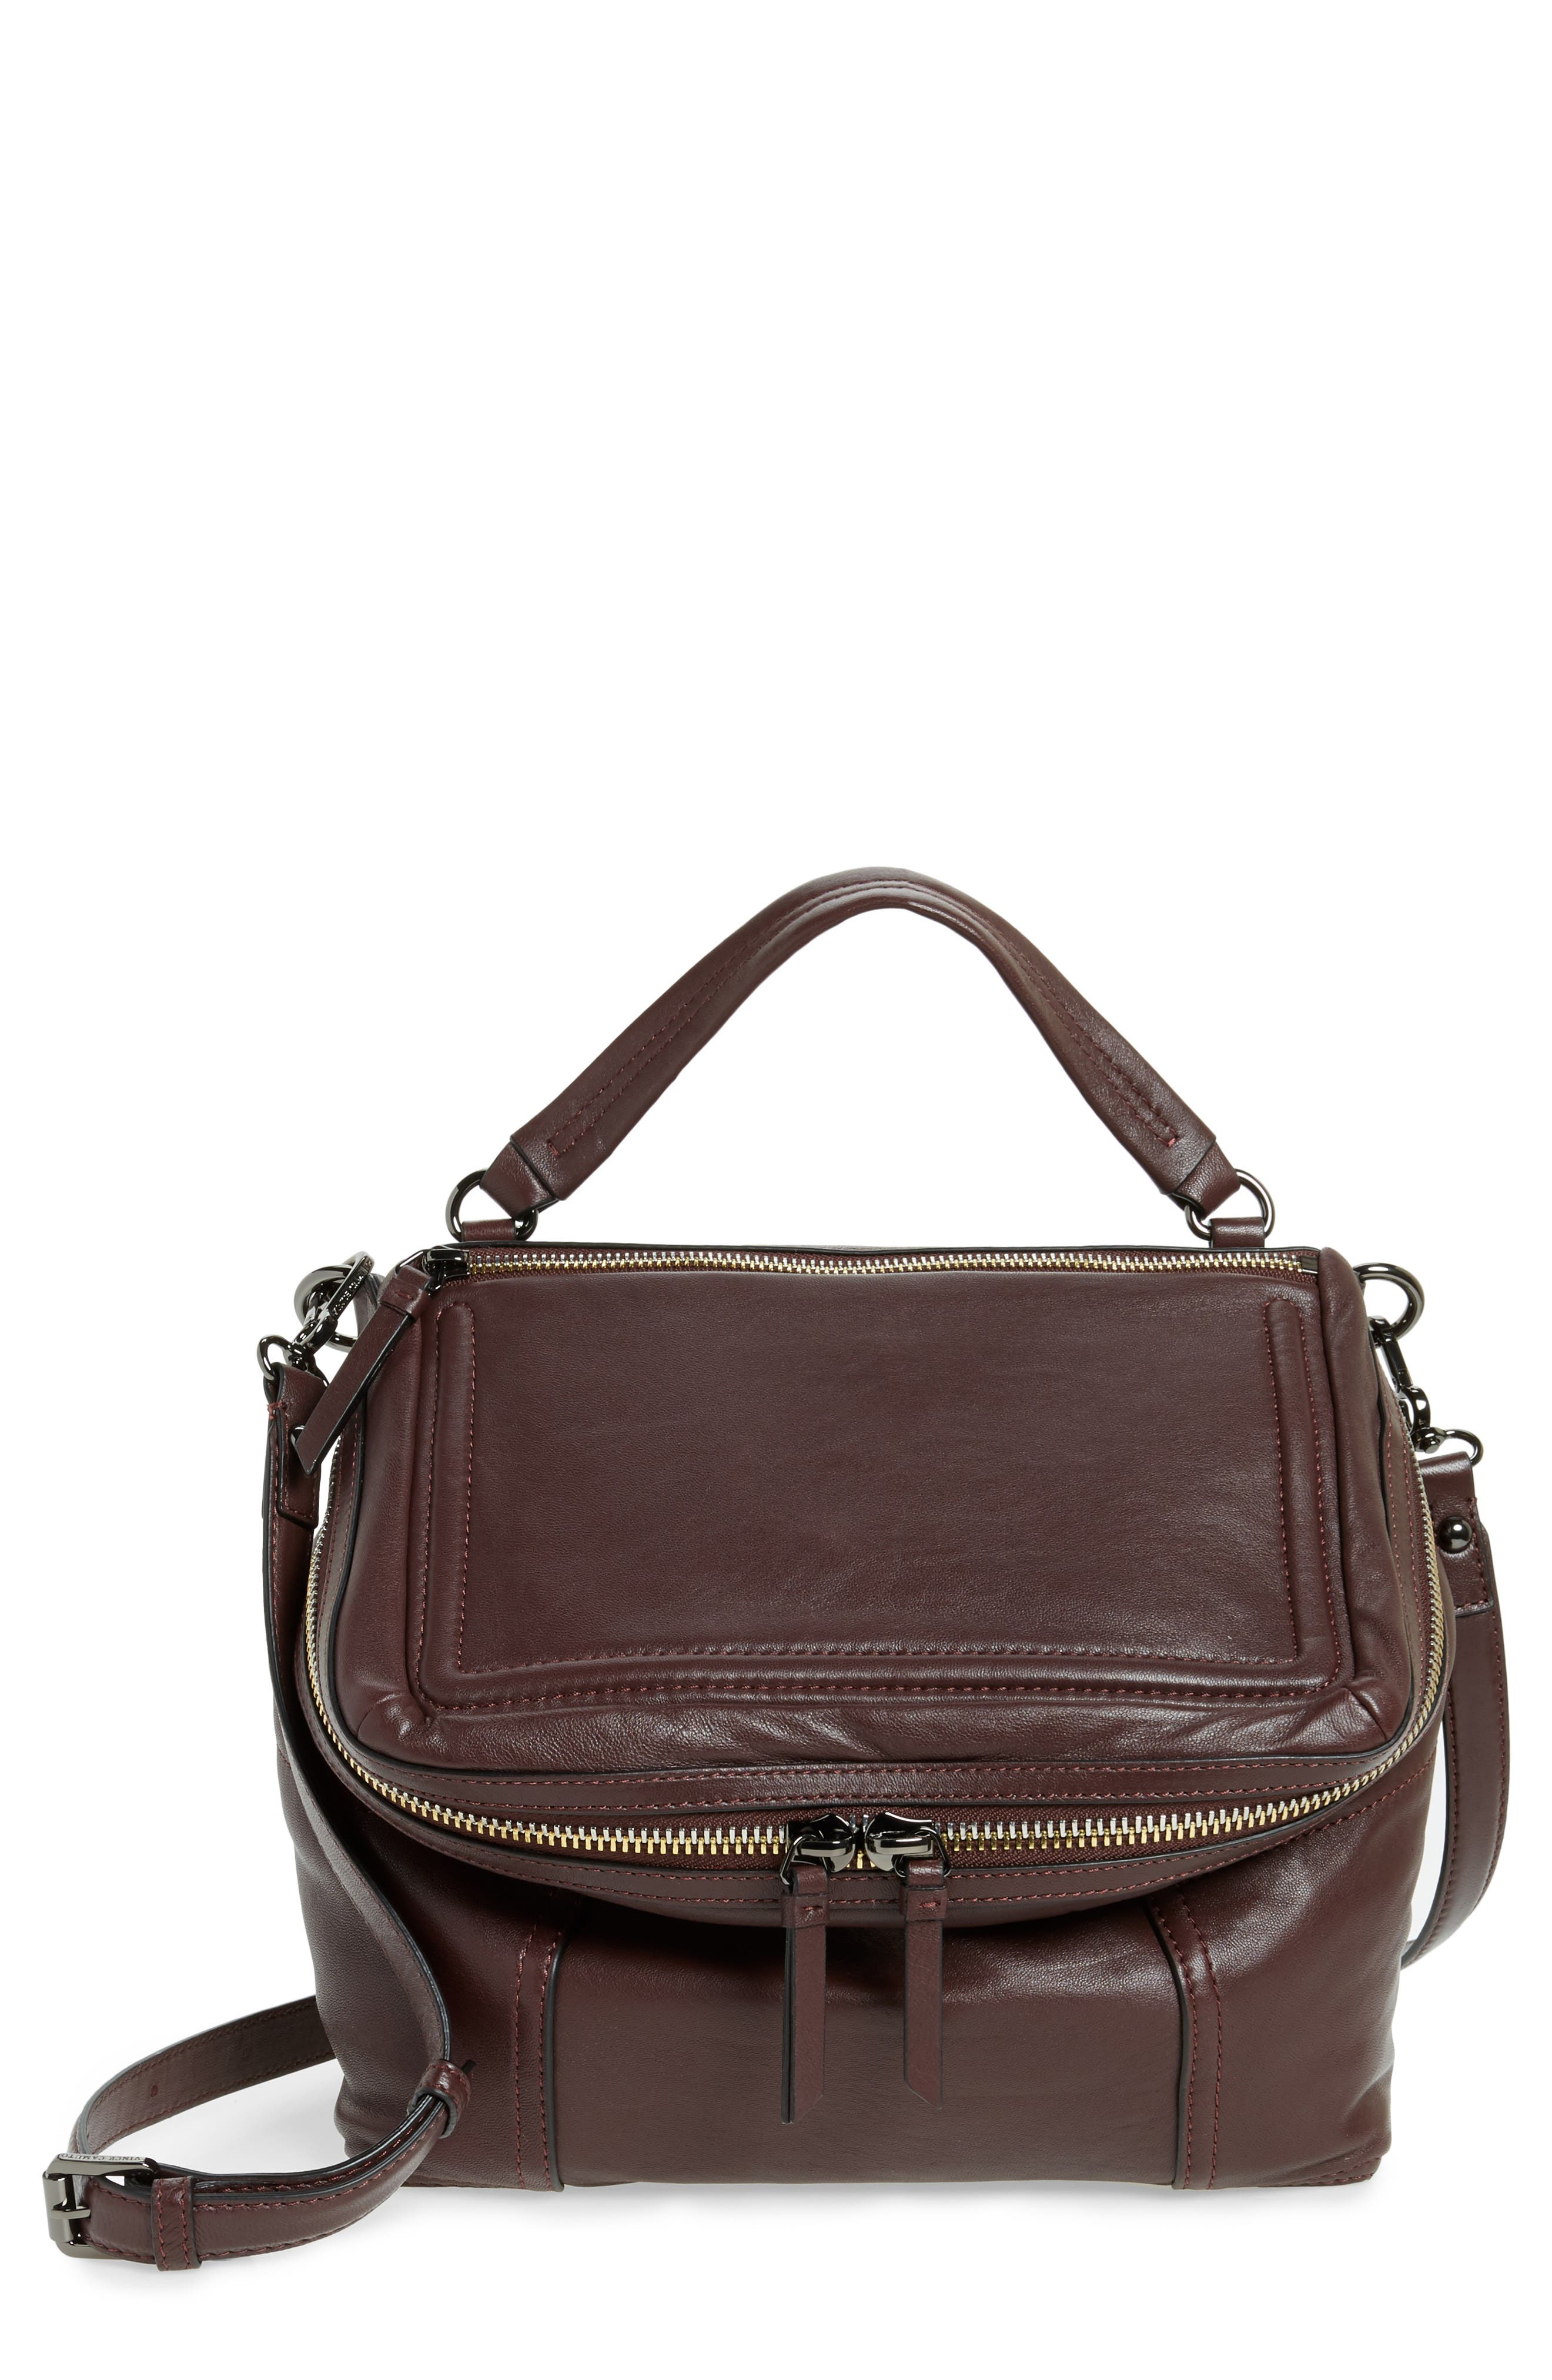 Large Patch Leather Crossbody Bag,                         Main,                         color, Black Cherry